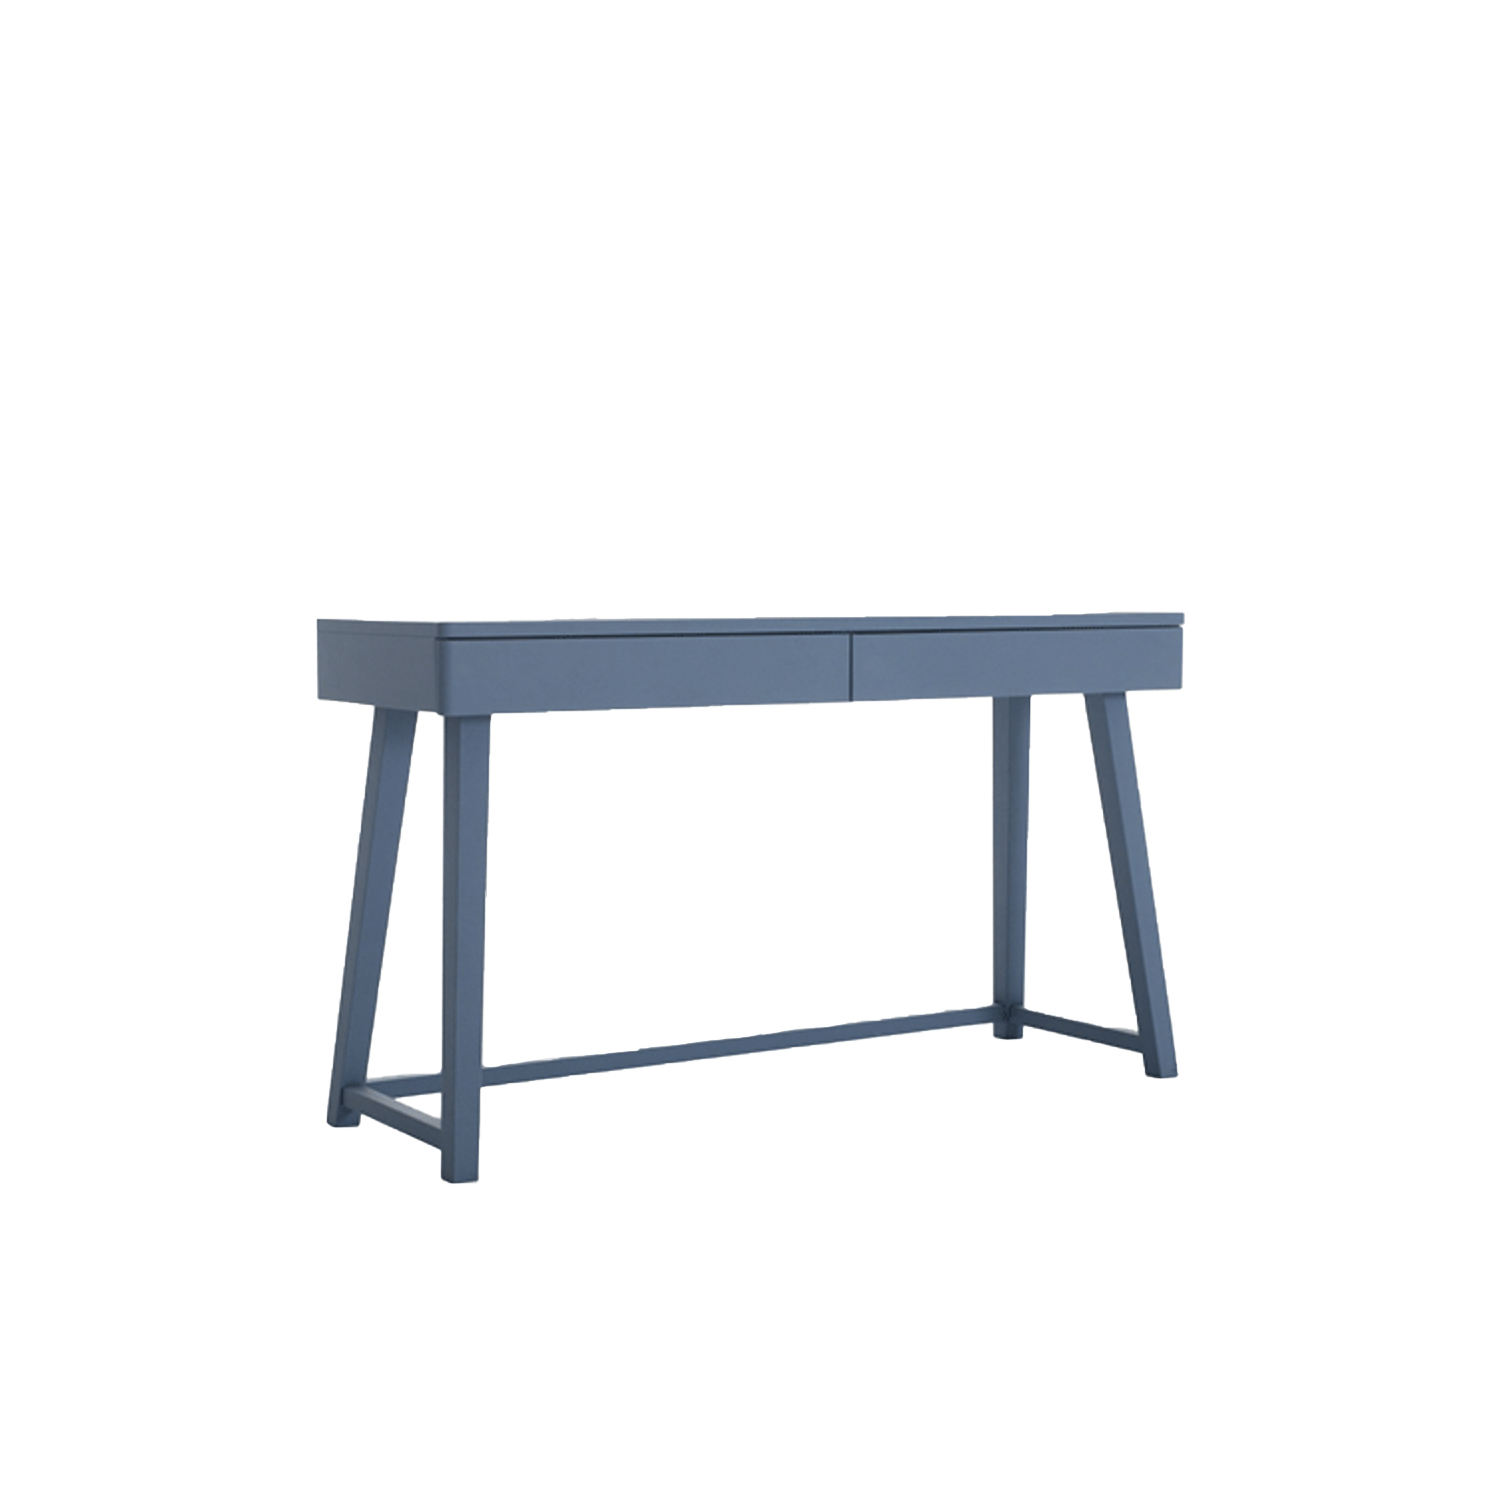 """Gray 50 Desk - The Gray collection is a combination of apparently incompatible elements achieving a result which is contemporary, poetic and attractive. Gray takes inspiration from two styles, the neo-classic gustavian and the scandinavian one from the seventies. Armchairs, sofas, tables, beds and storages are the elements of this line made of a material such as turned and shaped wood, woven fibre, slate, china, marble and mirror. The plain elegance of the XVIII century furniture melts with the sobriety of the scandinavian design, which is more familiar to us. The wooden surfaces are mat and chalky, lead grey and white. grey and white are also the colours f the striped fabrics covering the models and the knit made jacquard patterns used for the cushions. Crochet laces are the decoration of the mirror front doors of the storages. China and natural american walnut are the materials which give harmony to the complete line. Gray integrates """"gustavian"""" and """"scandinavian"""" styles into a harmonium and contemporary collection of casual furniture. Armchairs, sofas, tables, beds and storages are the elements of this line made of materials such as turned and shaped wood, slate, china, marble and mirror. 